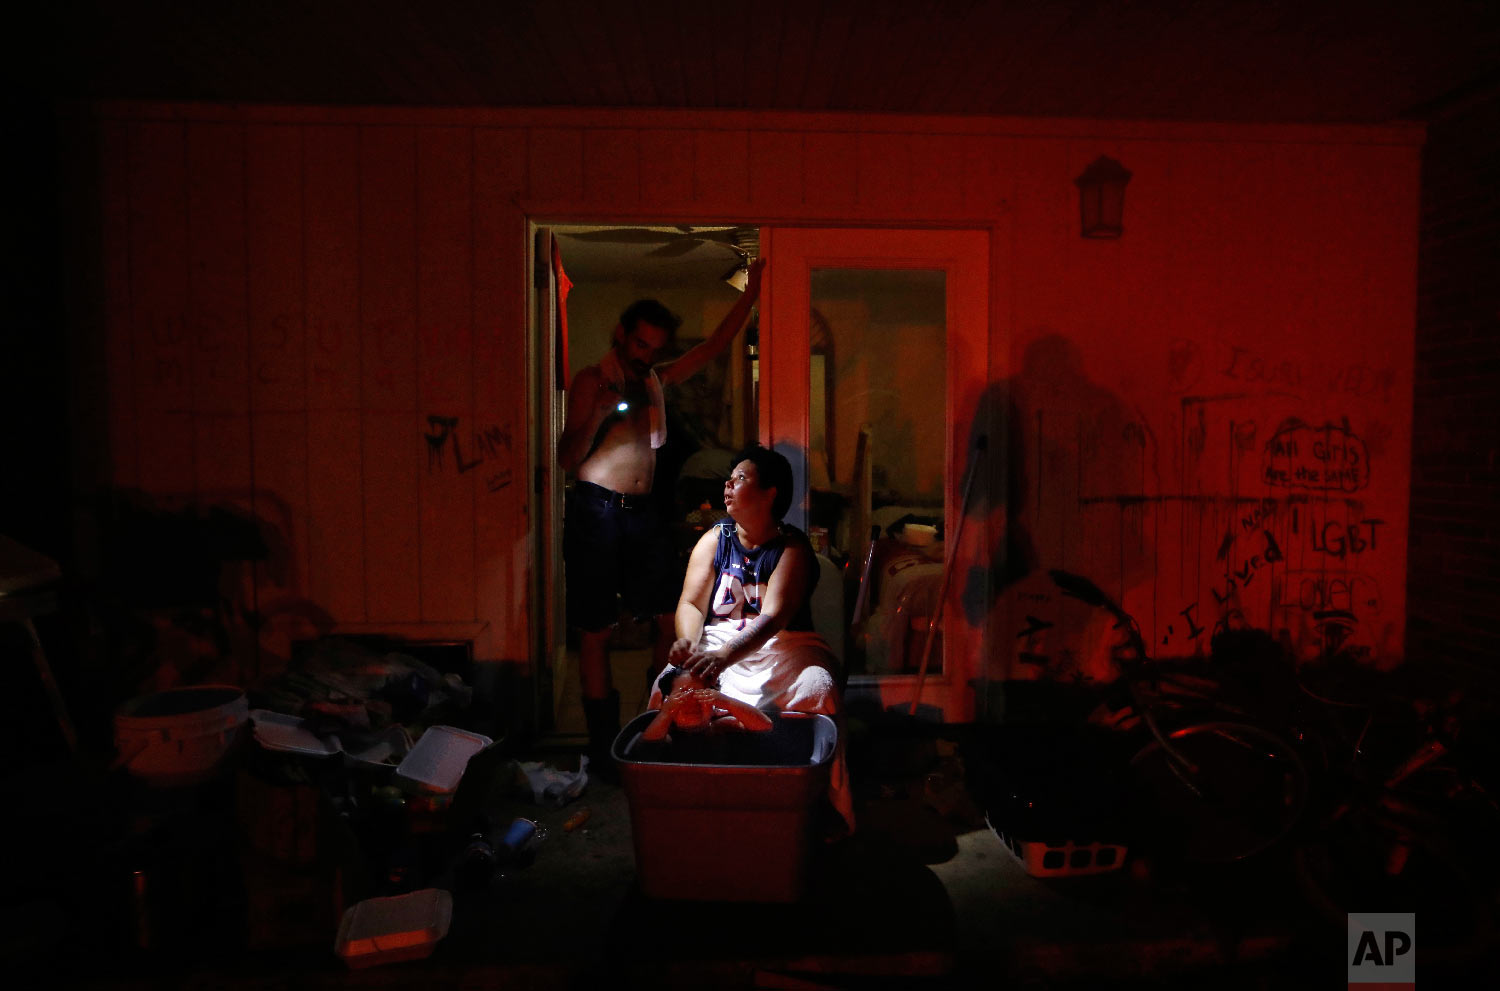 Tasha Hughes, bathes her daughter, Madison, 4, as Jeffrey Dumich holds a flashlight outside their room at the damaged American Quality Lodge where they continue to live without power in the aftermath of Hurricane Michael, in Panama City, Fla., Oct. 16, 2018. (AP Photo/David Goldman)